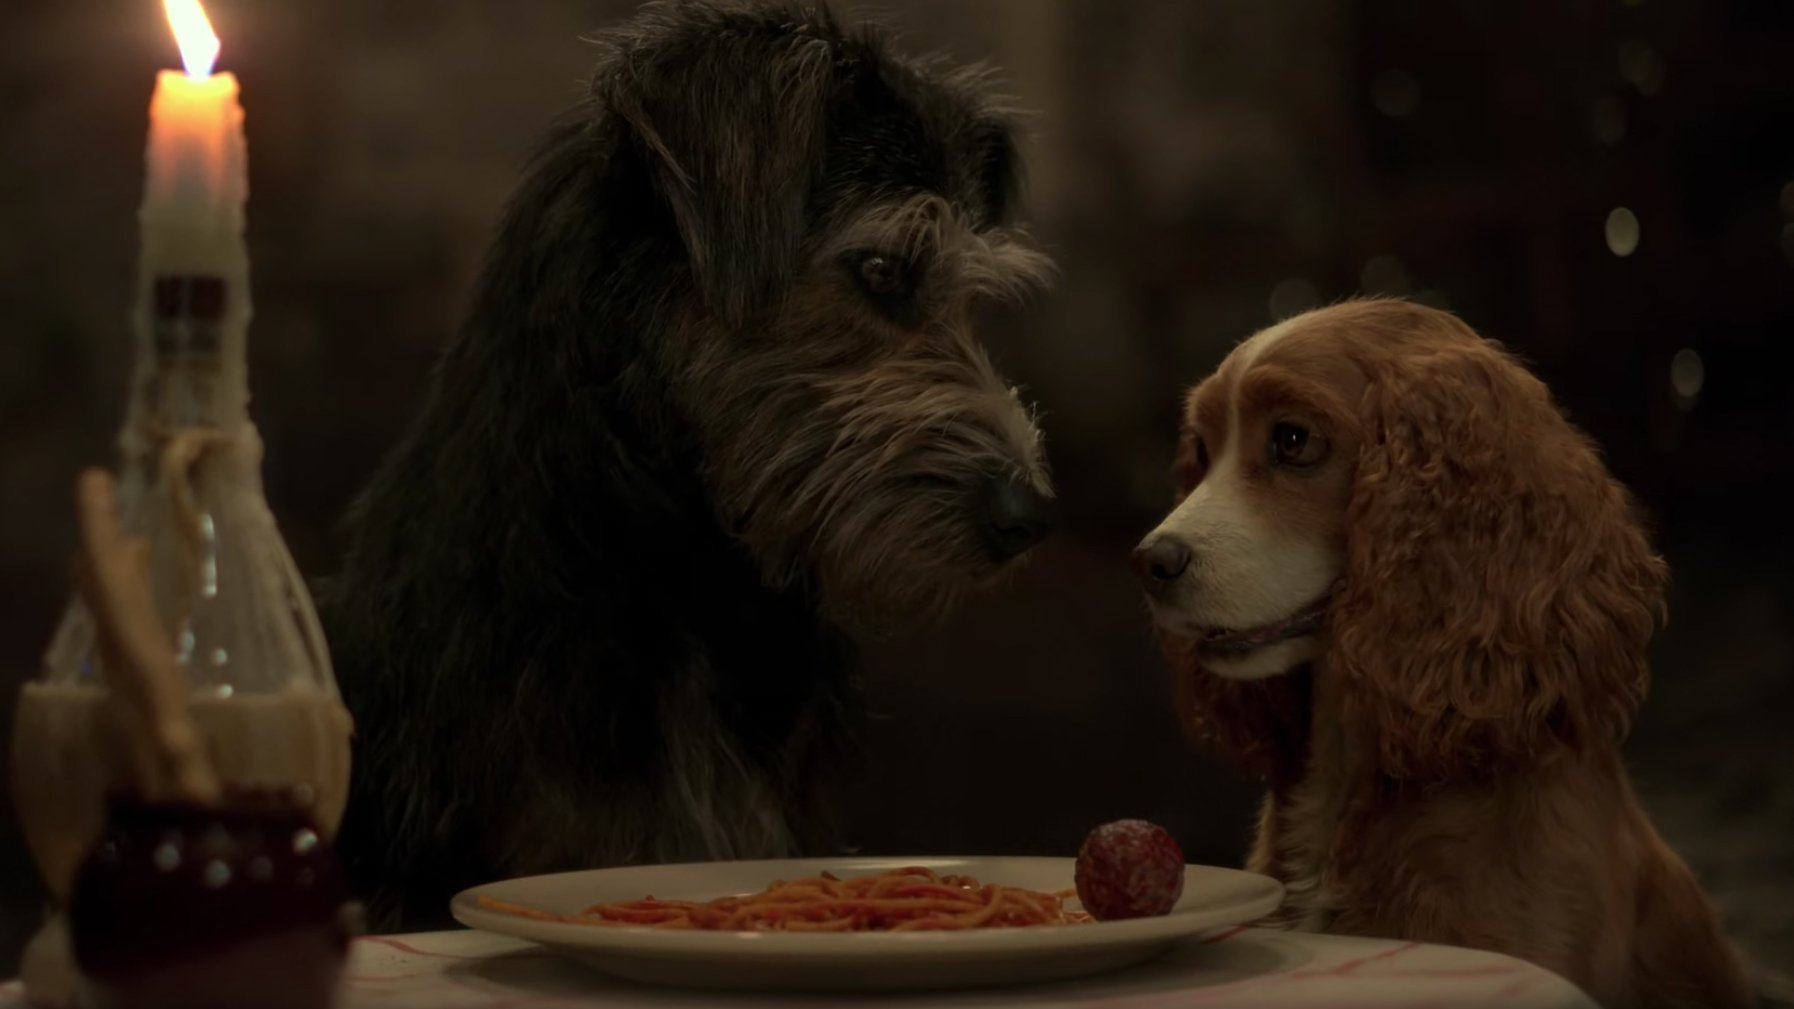 Disney debuts official trailer for 'Lady and the Tramp' live-action remake